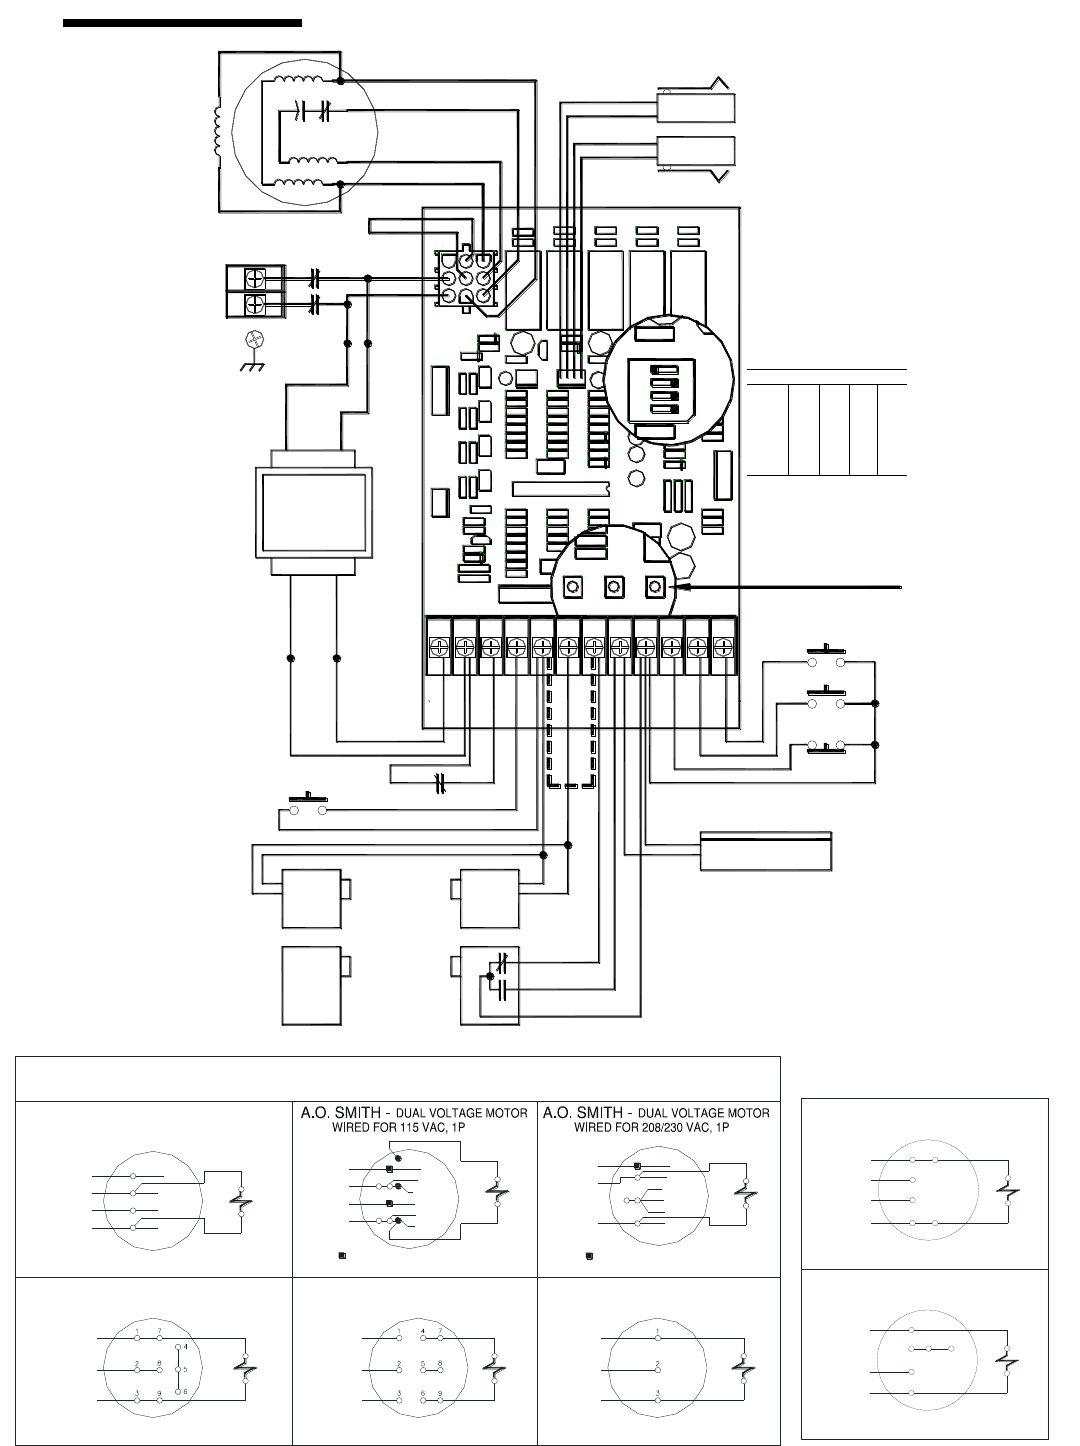 9028f597 4ae9 412f a06d e76d1de71b42 bg16 page 22 of linear garage door opener j s user guide garage door opener wiring schematic at bayanpartner.co